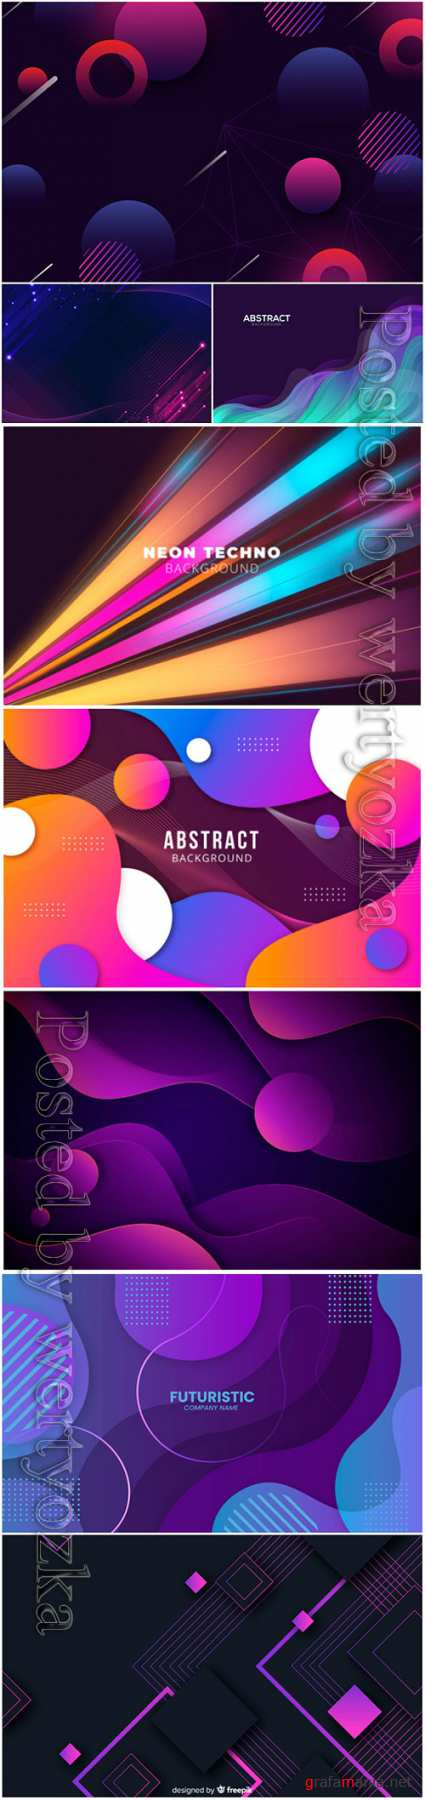 Luxury abstract backgrounds in vector # 2